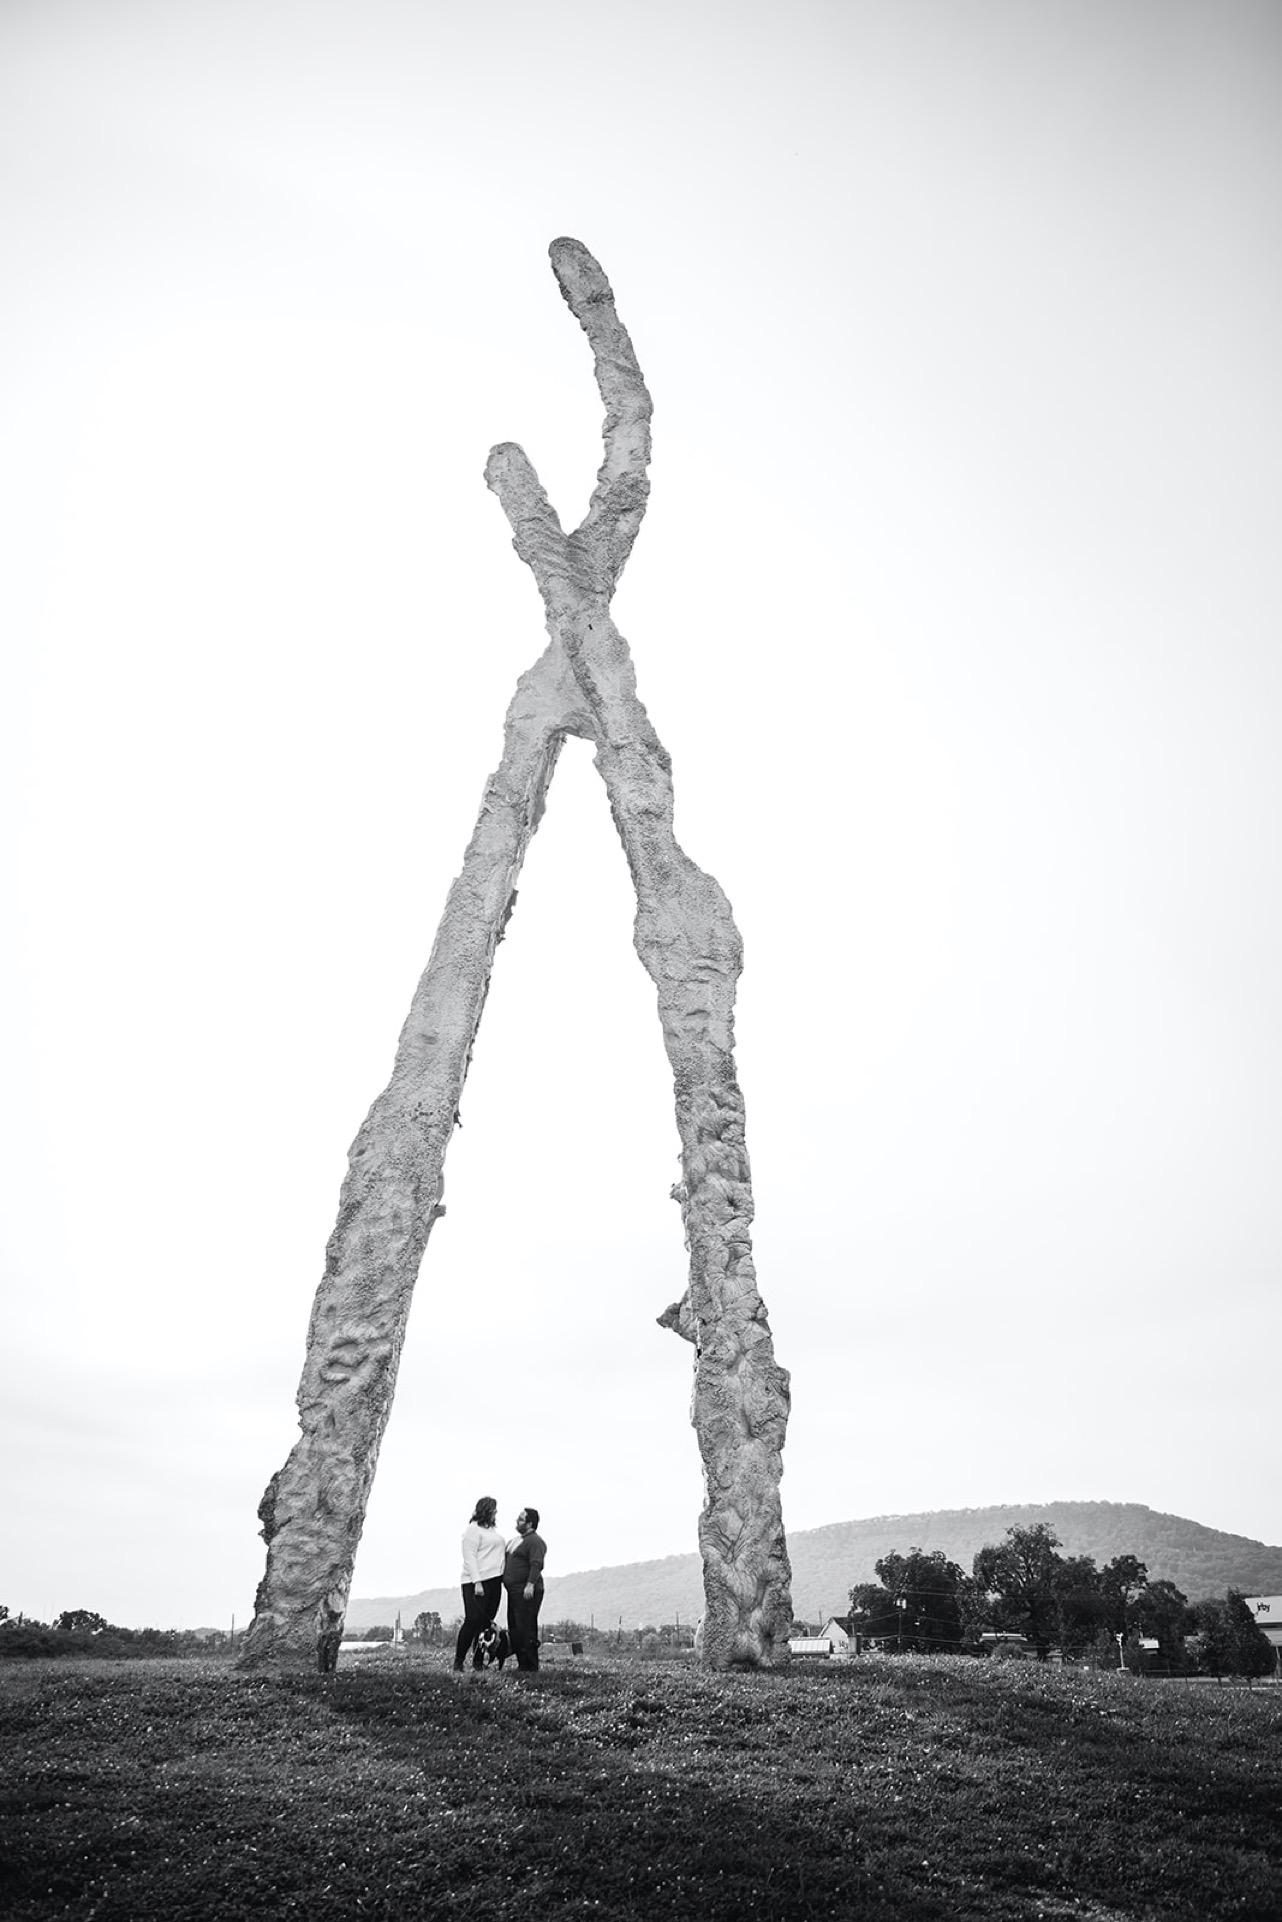 An engaged couple standing arm-in-arm beneath a massive sculpture in a park.